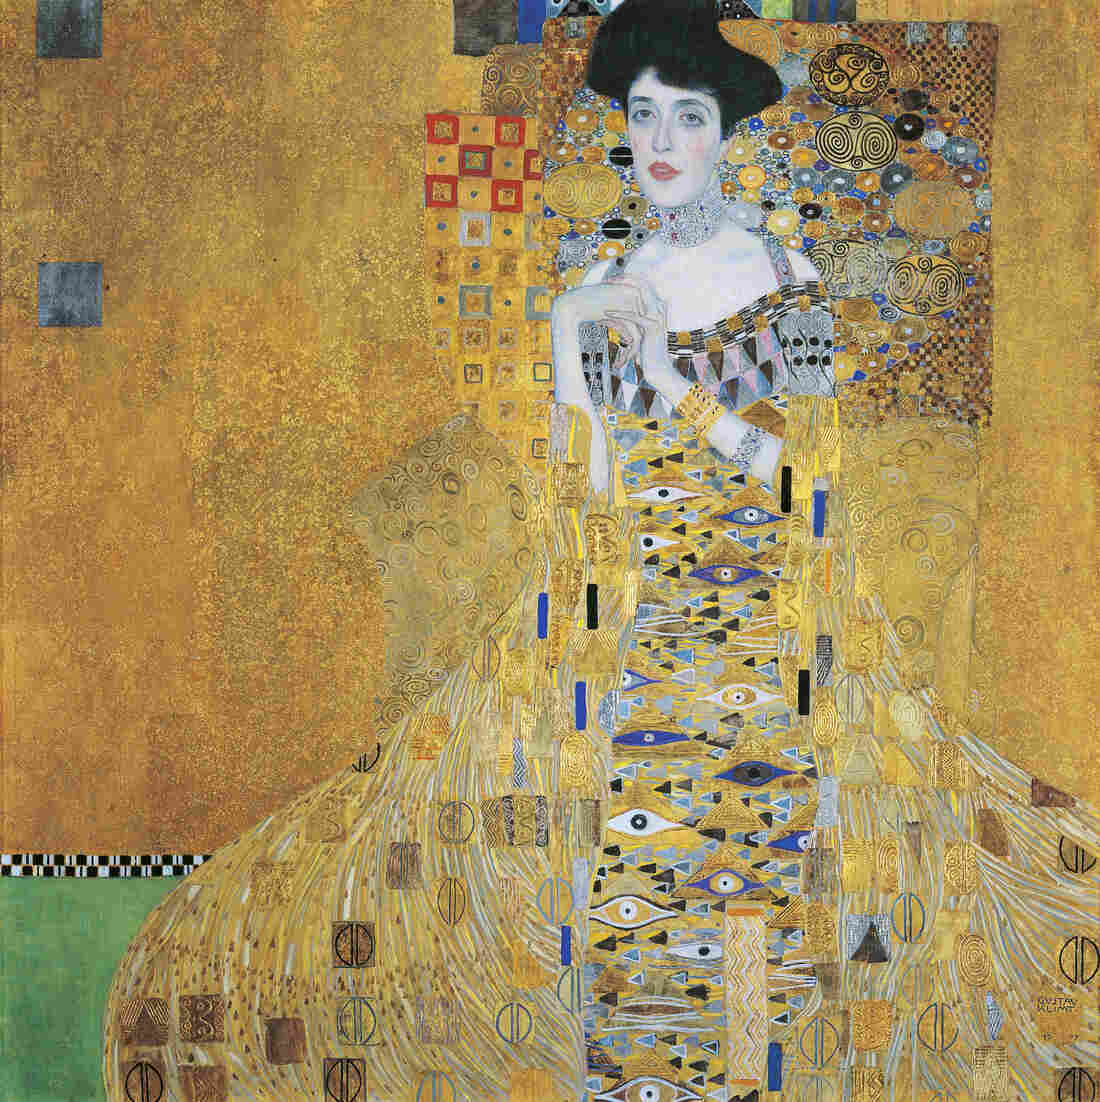 Maria Altmann fought her way to the U.S. Supreme Court to force the Austrian government to give back this painting by Gustav Klimt of her aunt, Adele Bloch-Bauer.